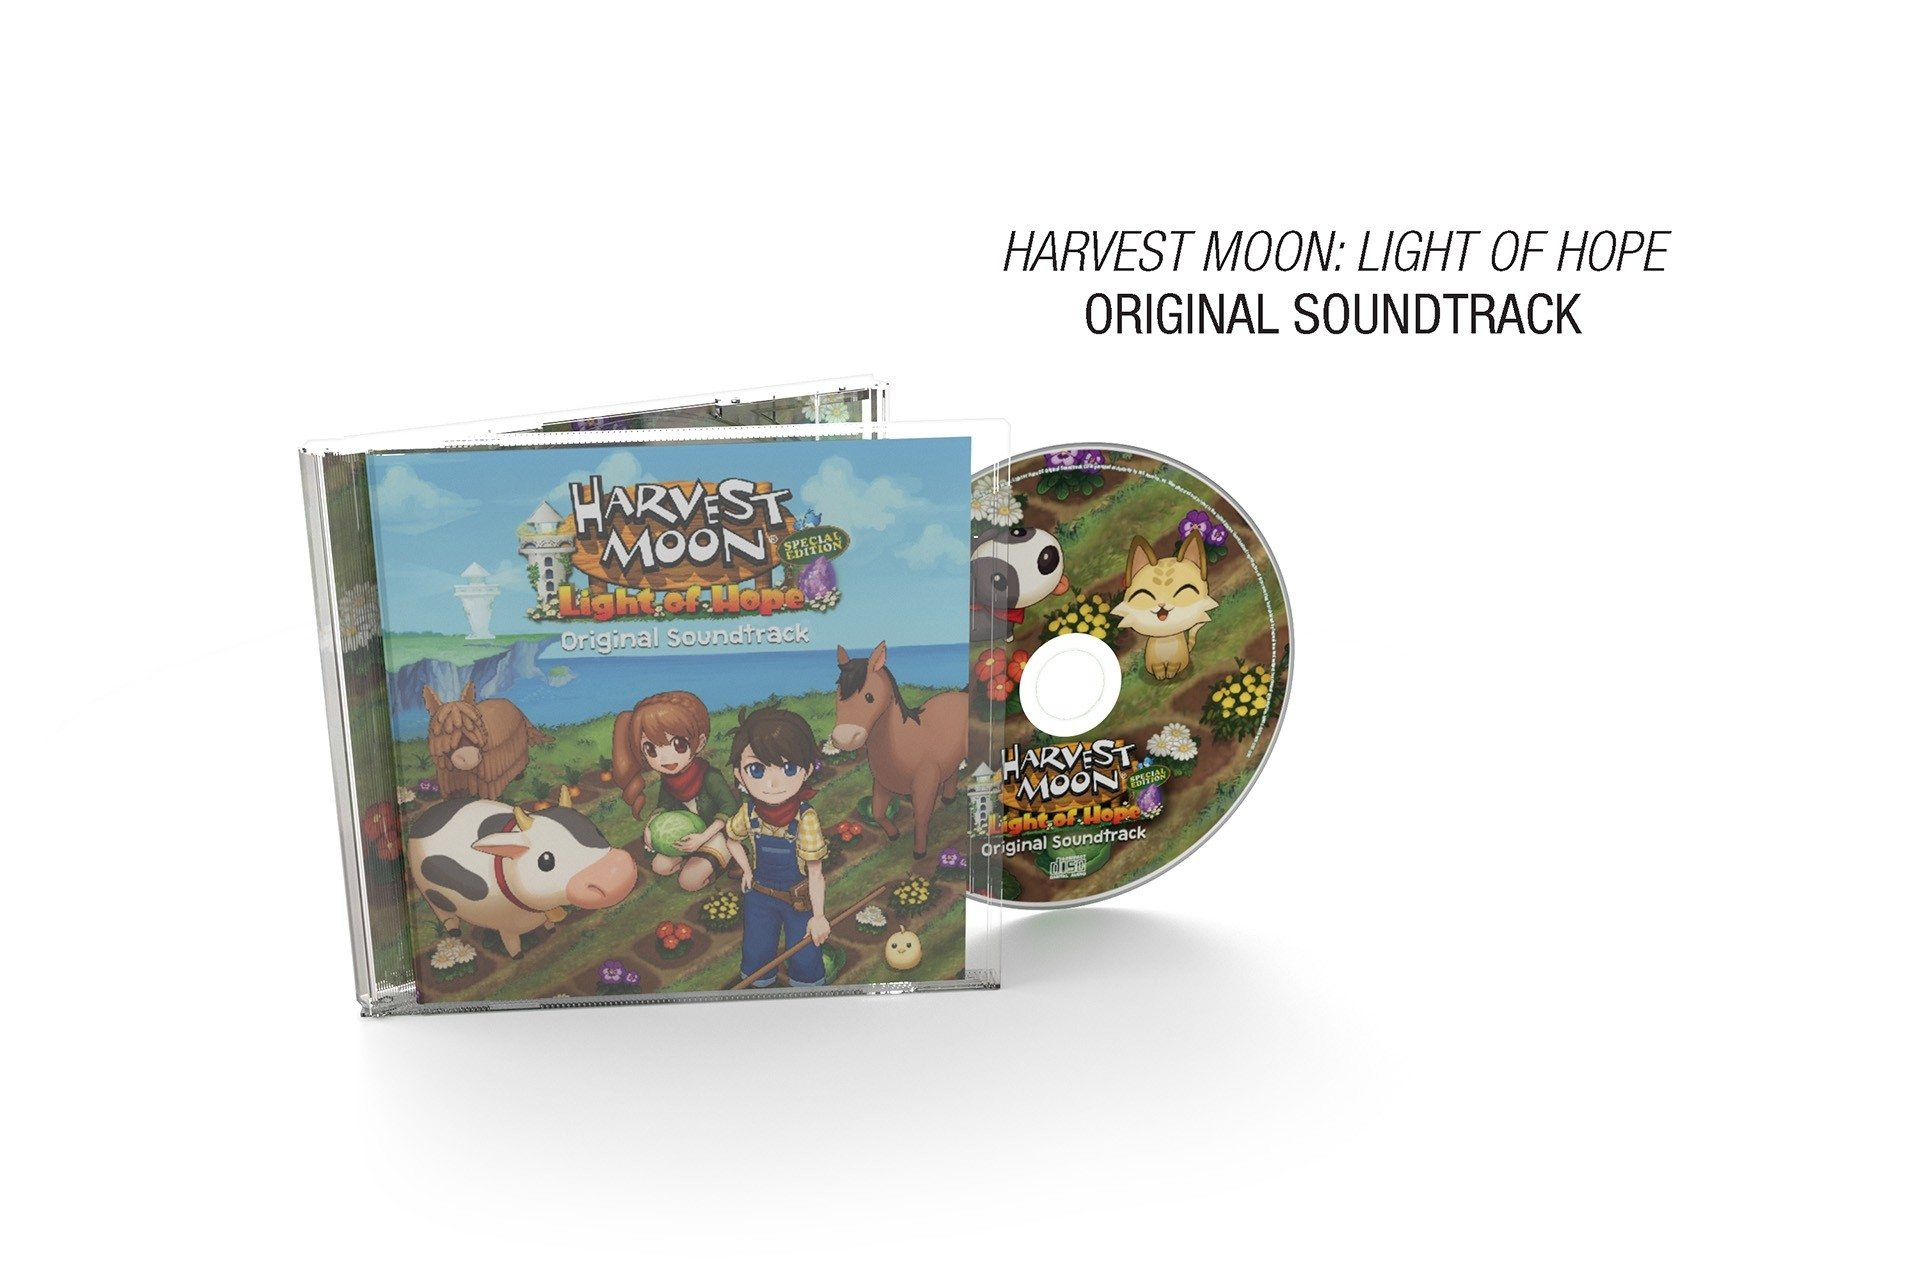 Harvest Moon Limited Edition